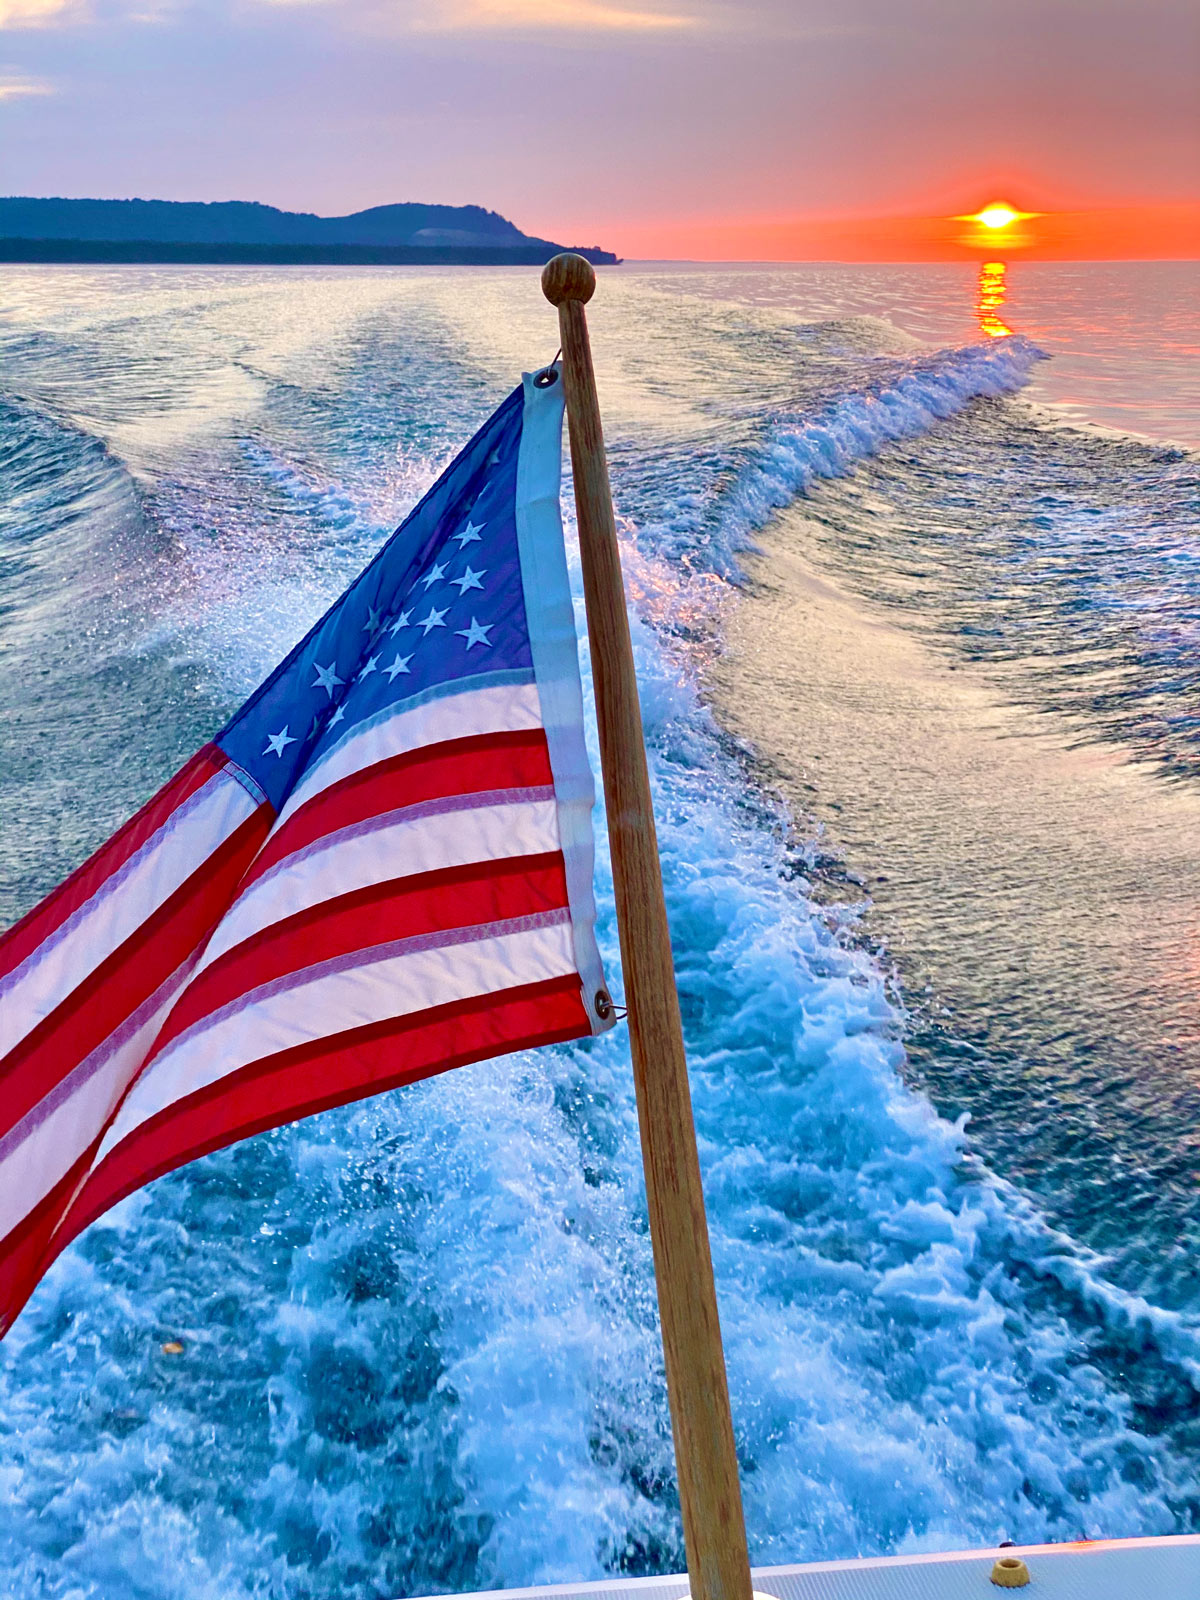 An American flag at the back of a moving boat, with a beautiful sunset in the background.